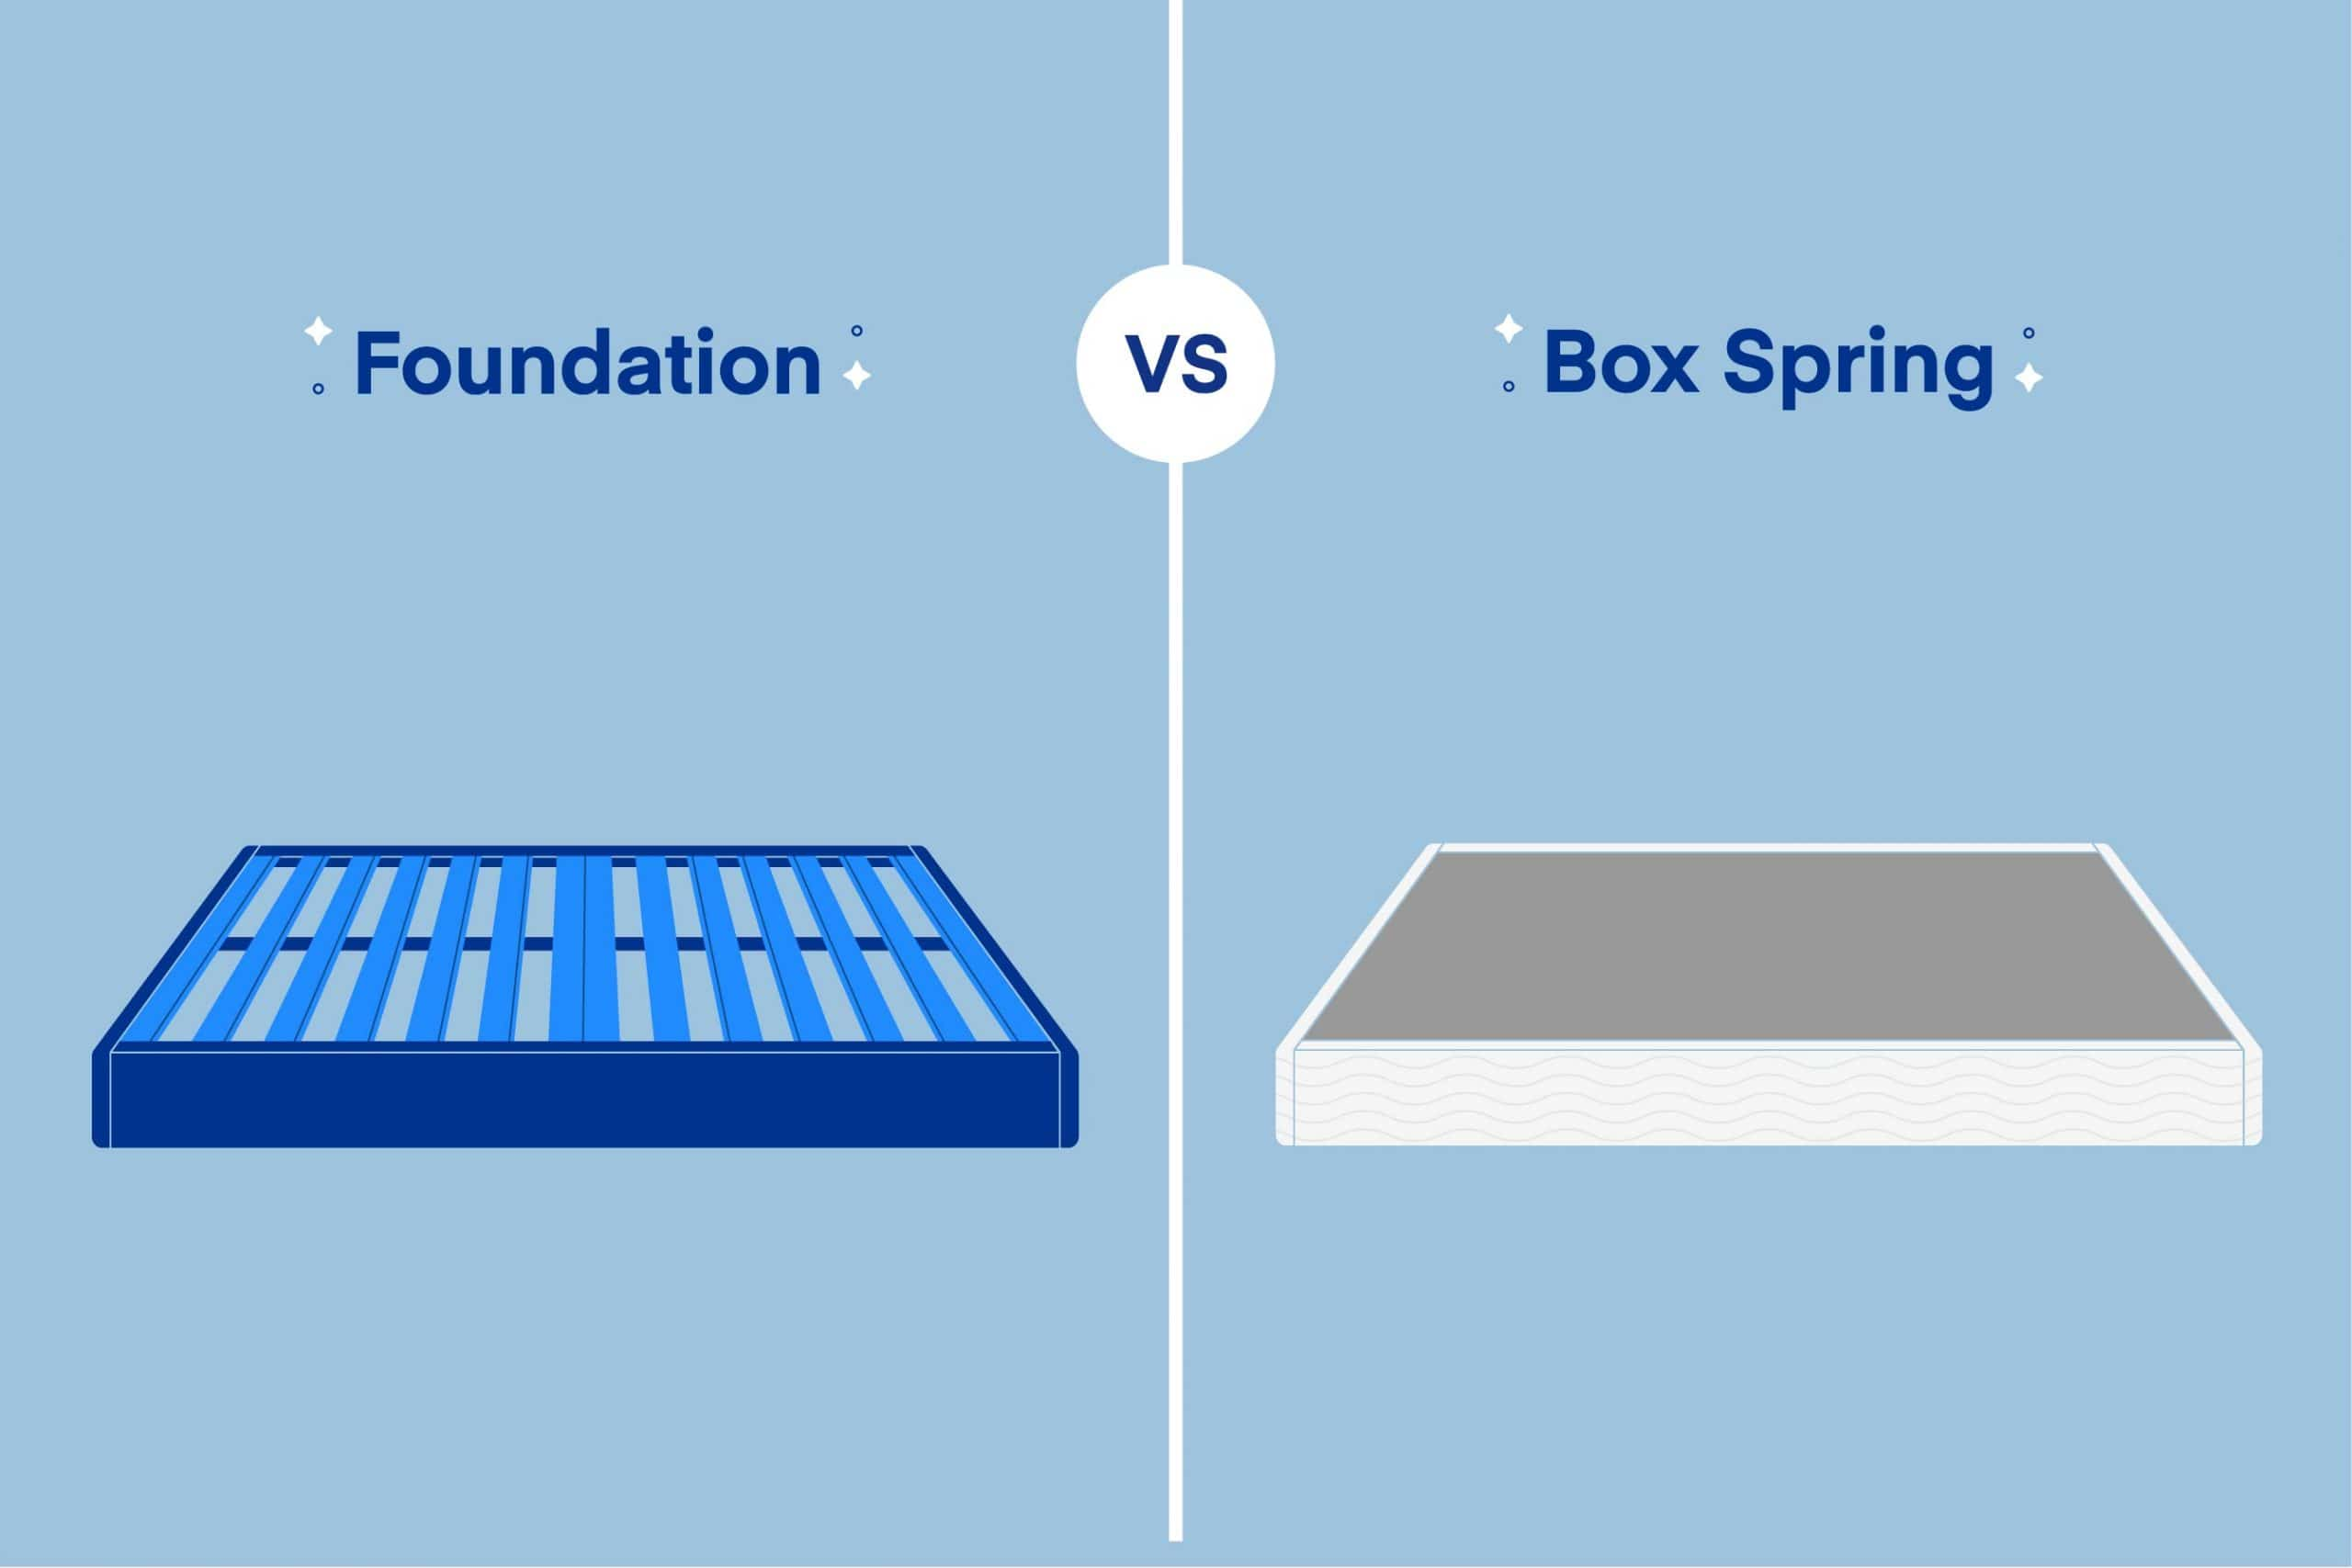 Box Spring vs. Foundation: What's the Difference?